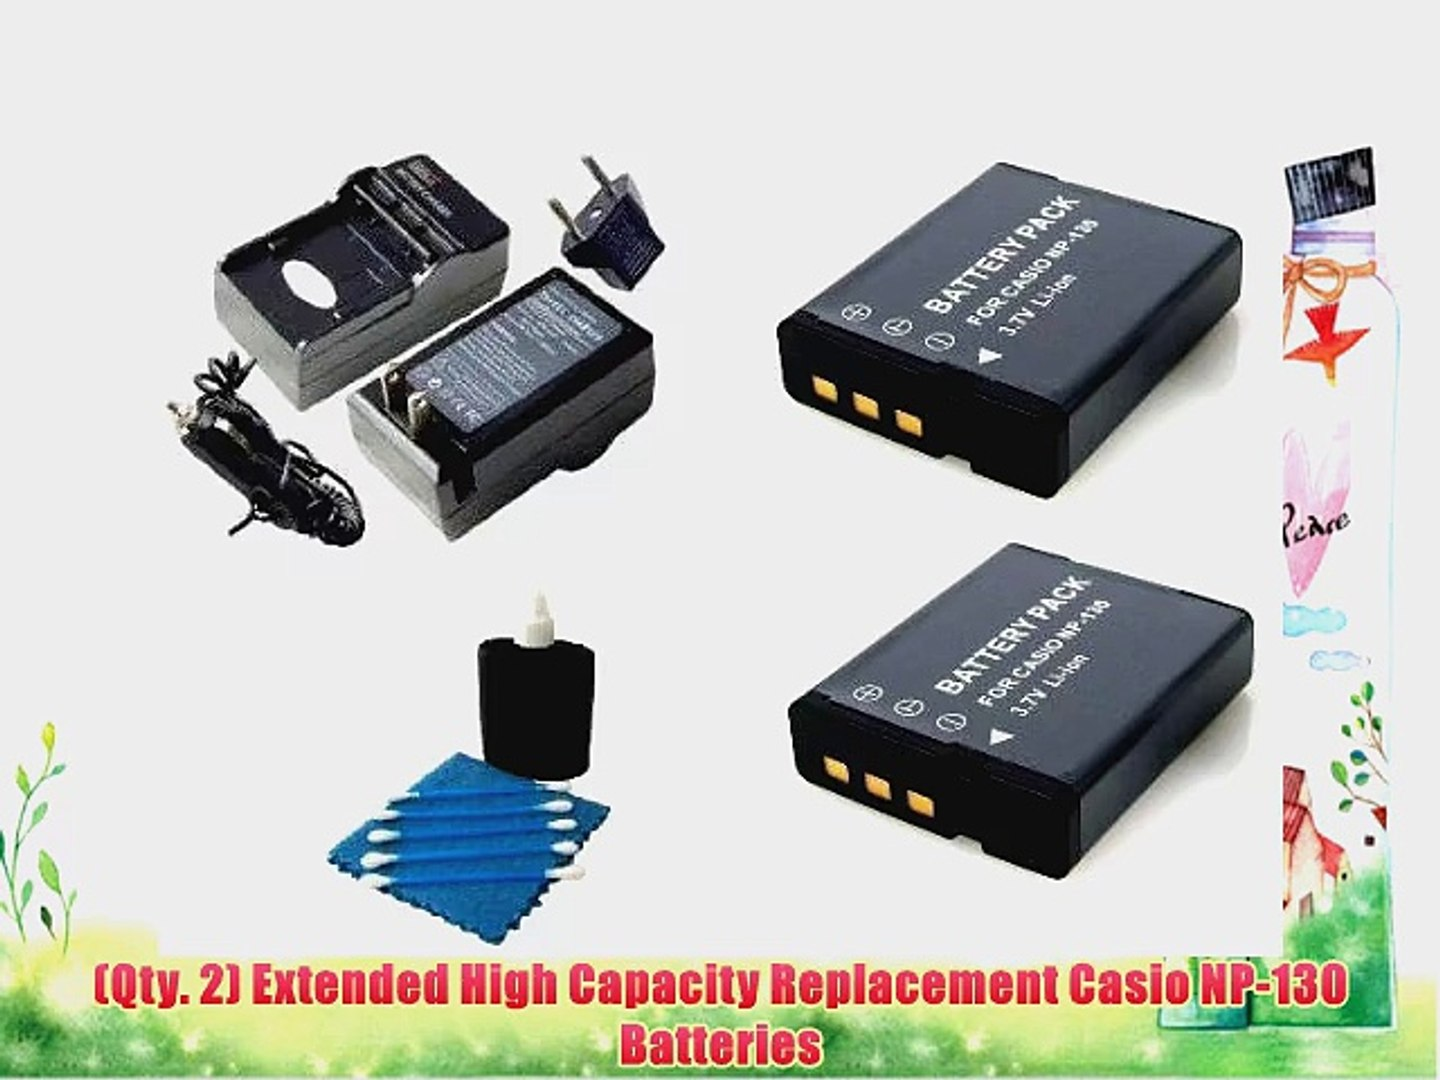 SaveOn 2 Pack Battery and Charger Kit includes Two High Capacity Replacement Casio NP-130 Batteries